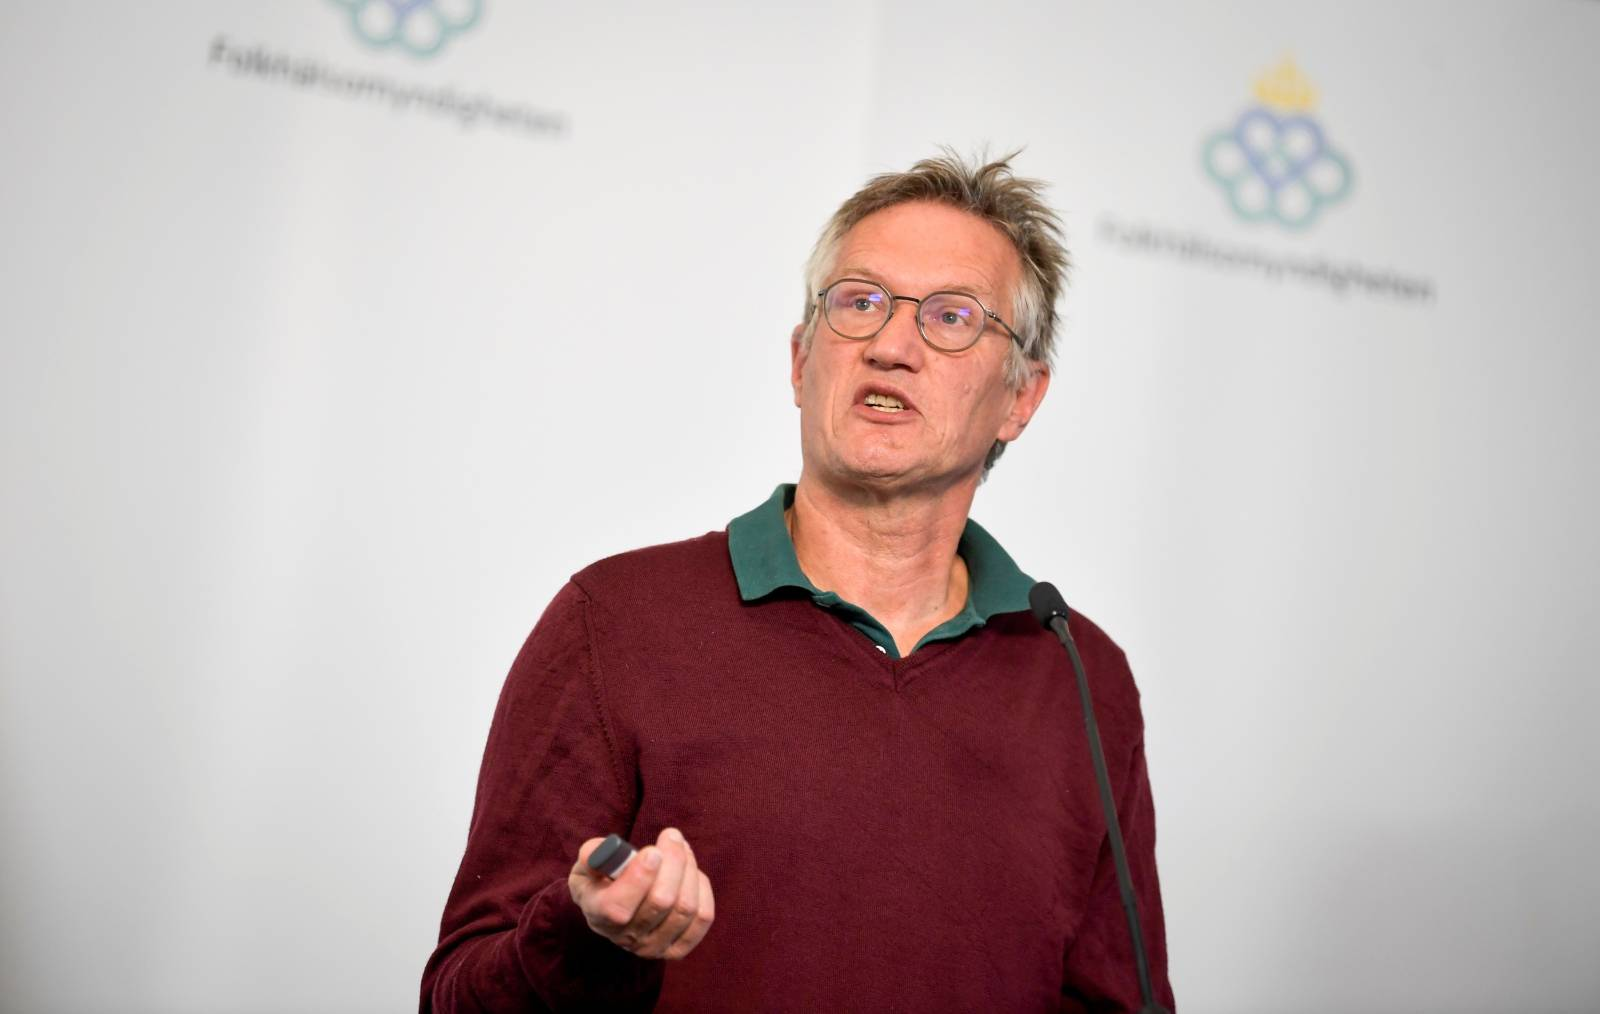 Anders Tegnell, the state epidemiologist of the Public Health Agency of Sweden speaks during a news conference about the daily update on the coronavirus disease (COVID-19) situation, in Stockholm